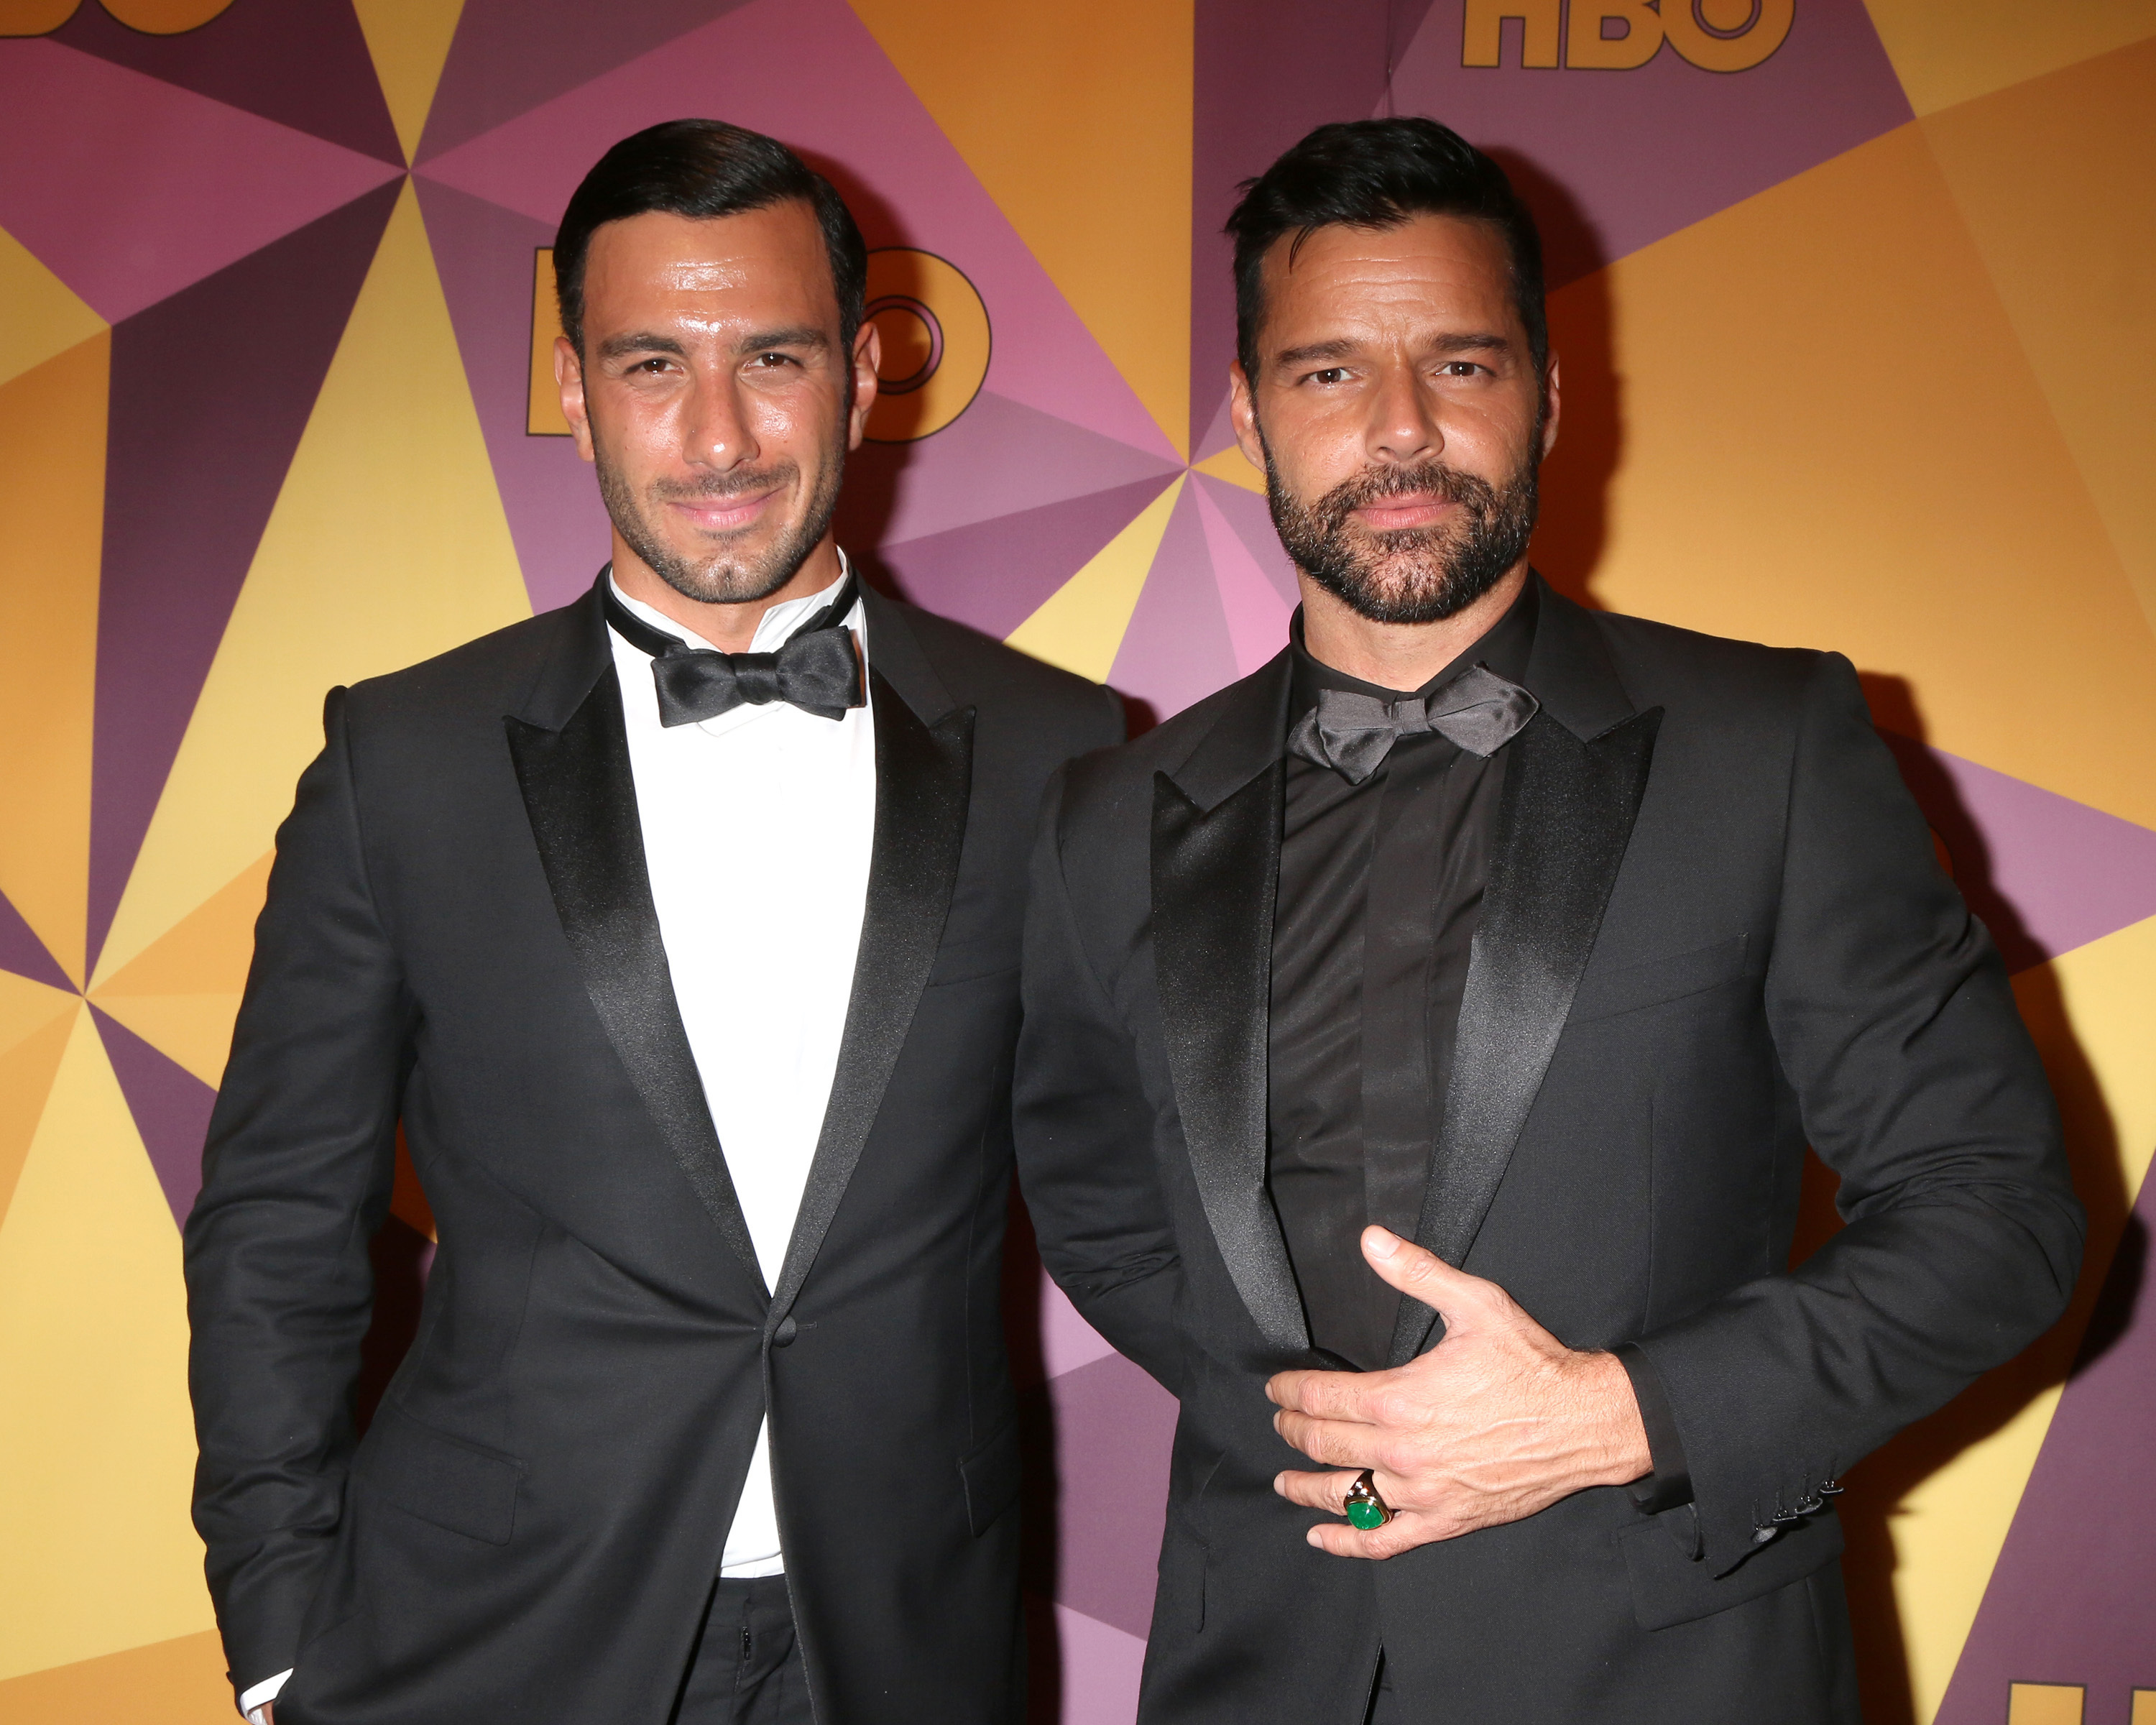 Ricky Martin Secretly Married Jwan Yosef: Get the Details